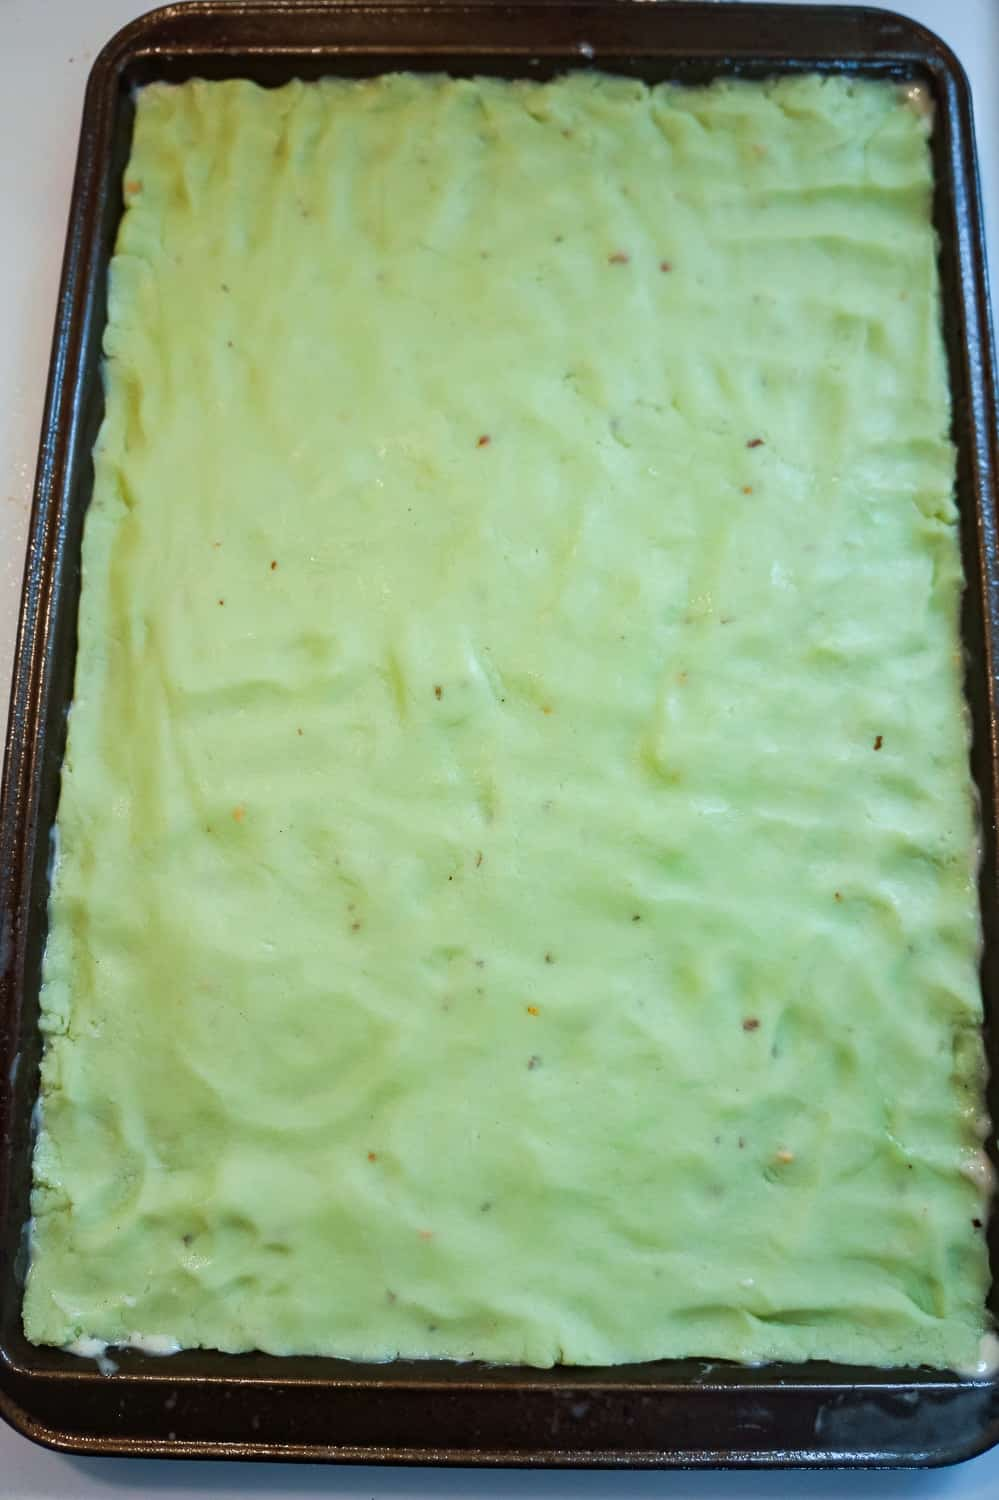 pistachio pudding sugar dough pressed out in baking sheet